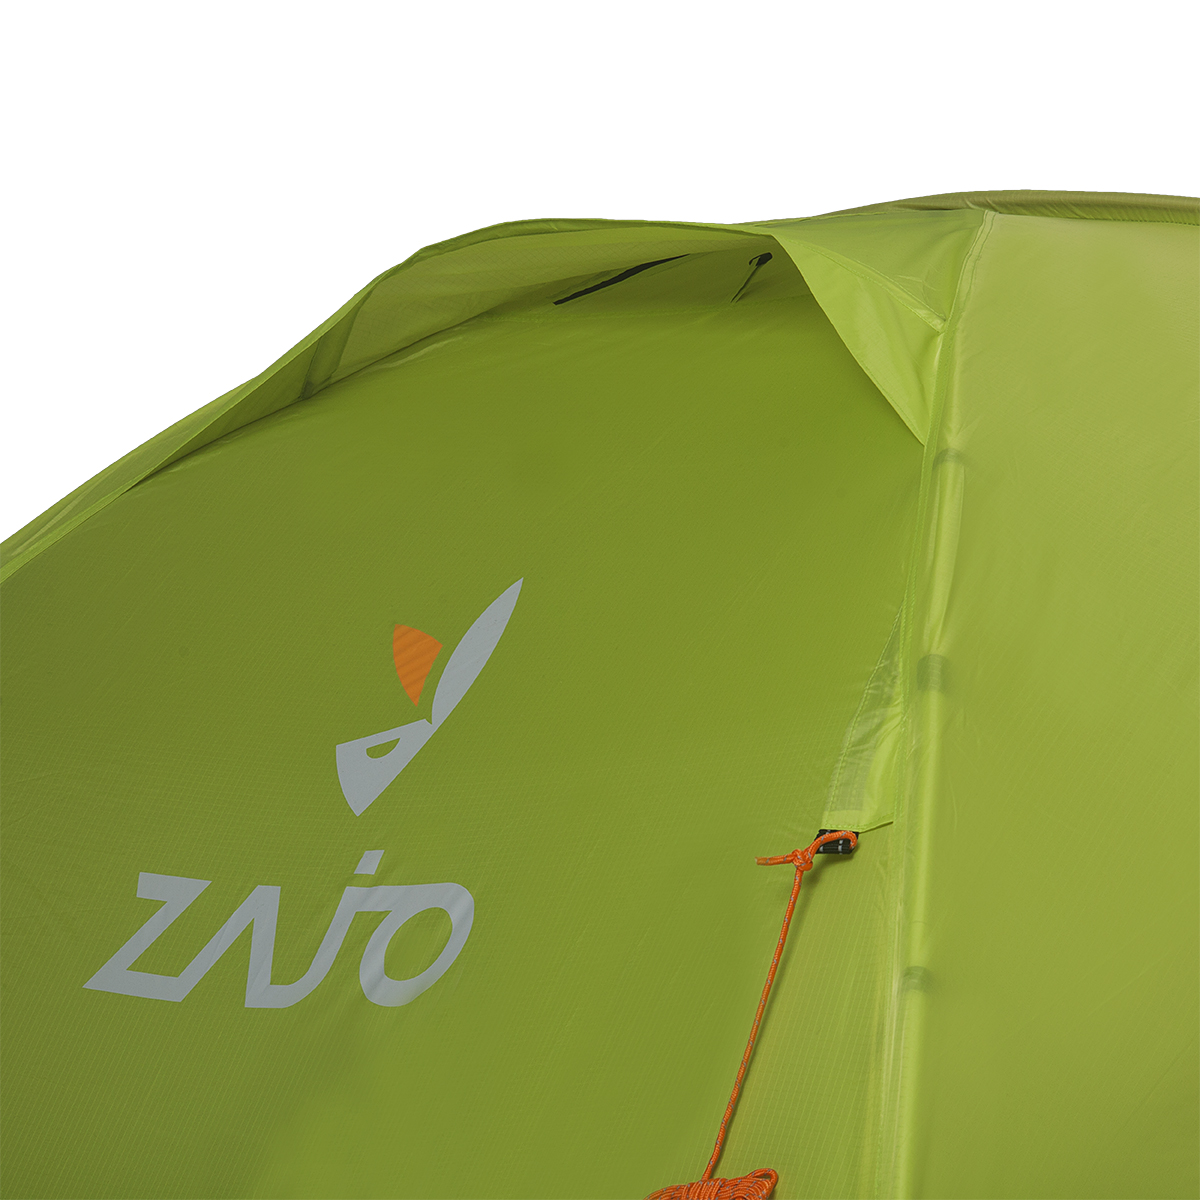 Outdoor Norsk 2 Neo Tent Zajo United Kingdom Leaf